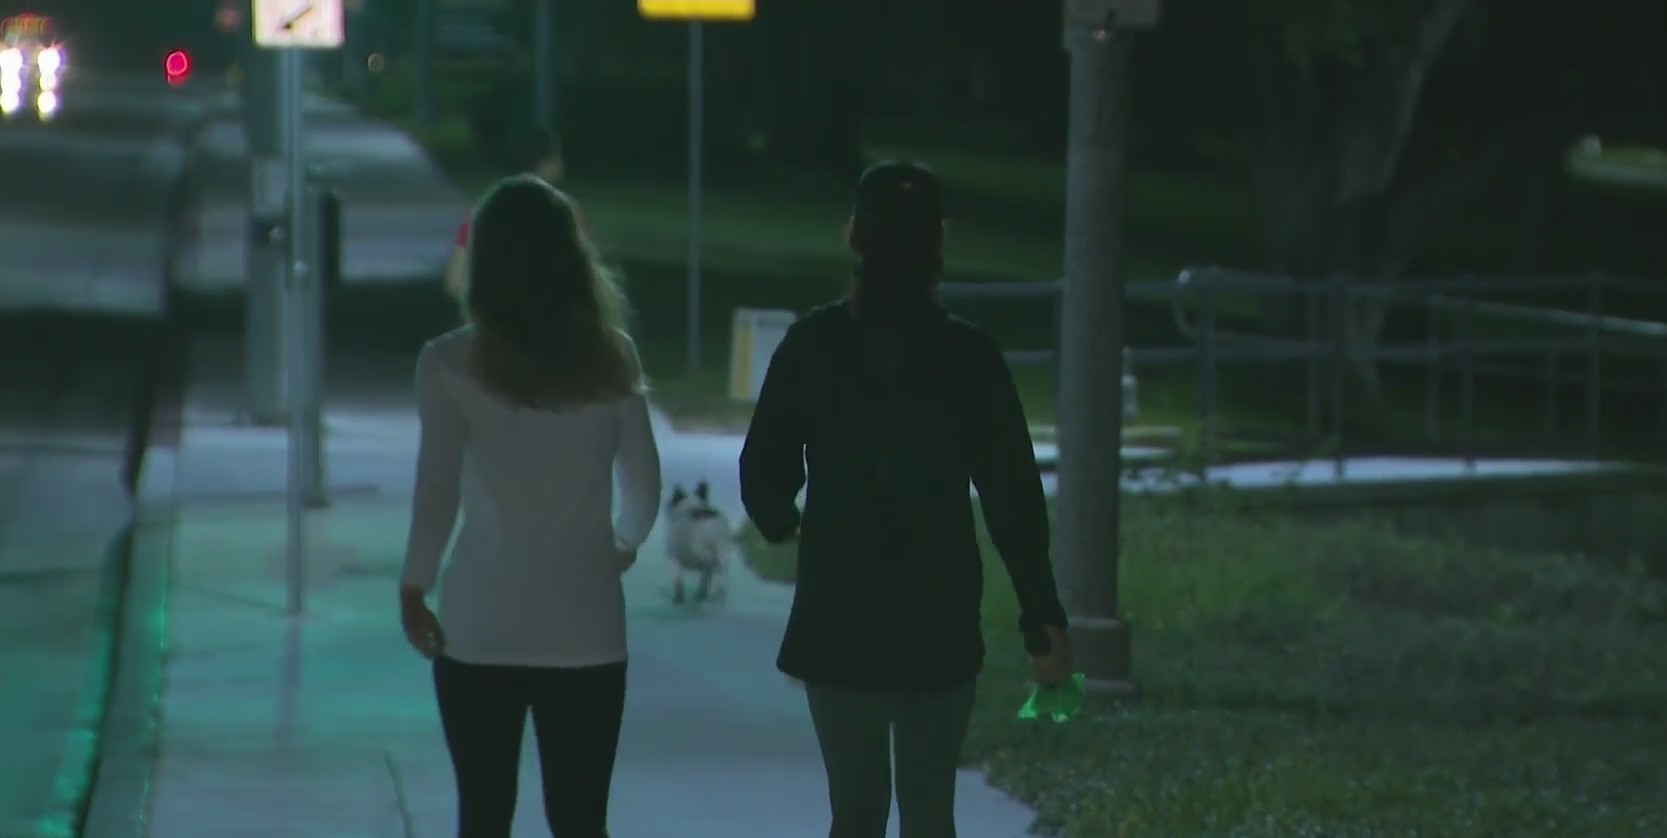 People walk on the Cal State Long Beach campus on Sept. 28, 2020. (KTLA)